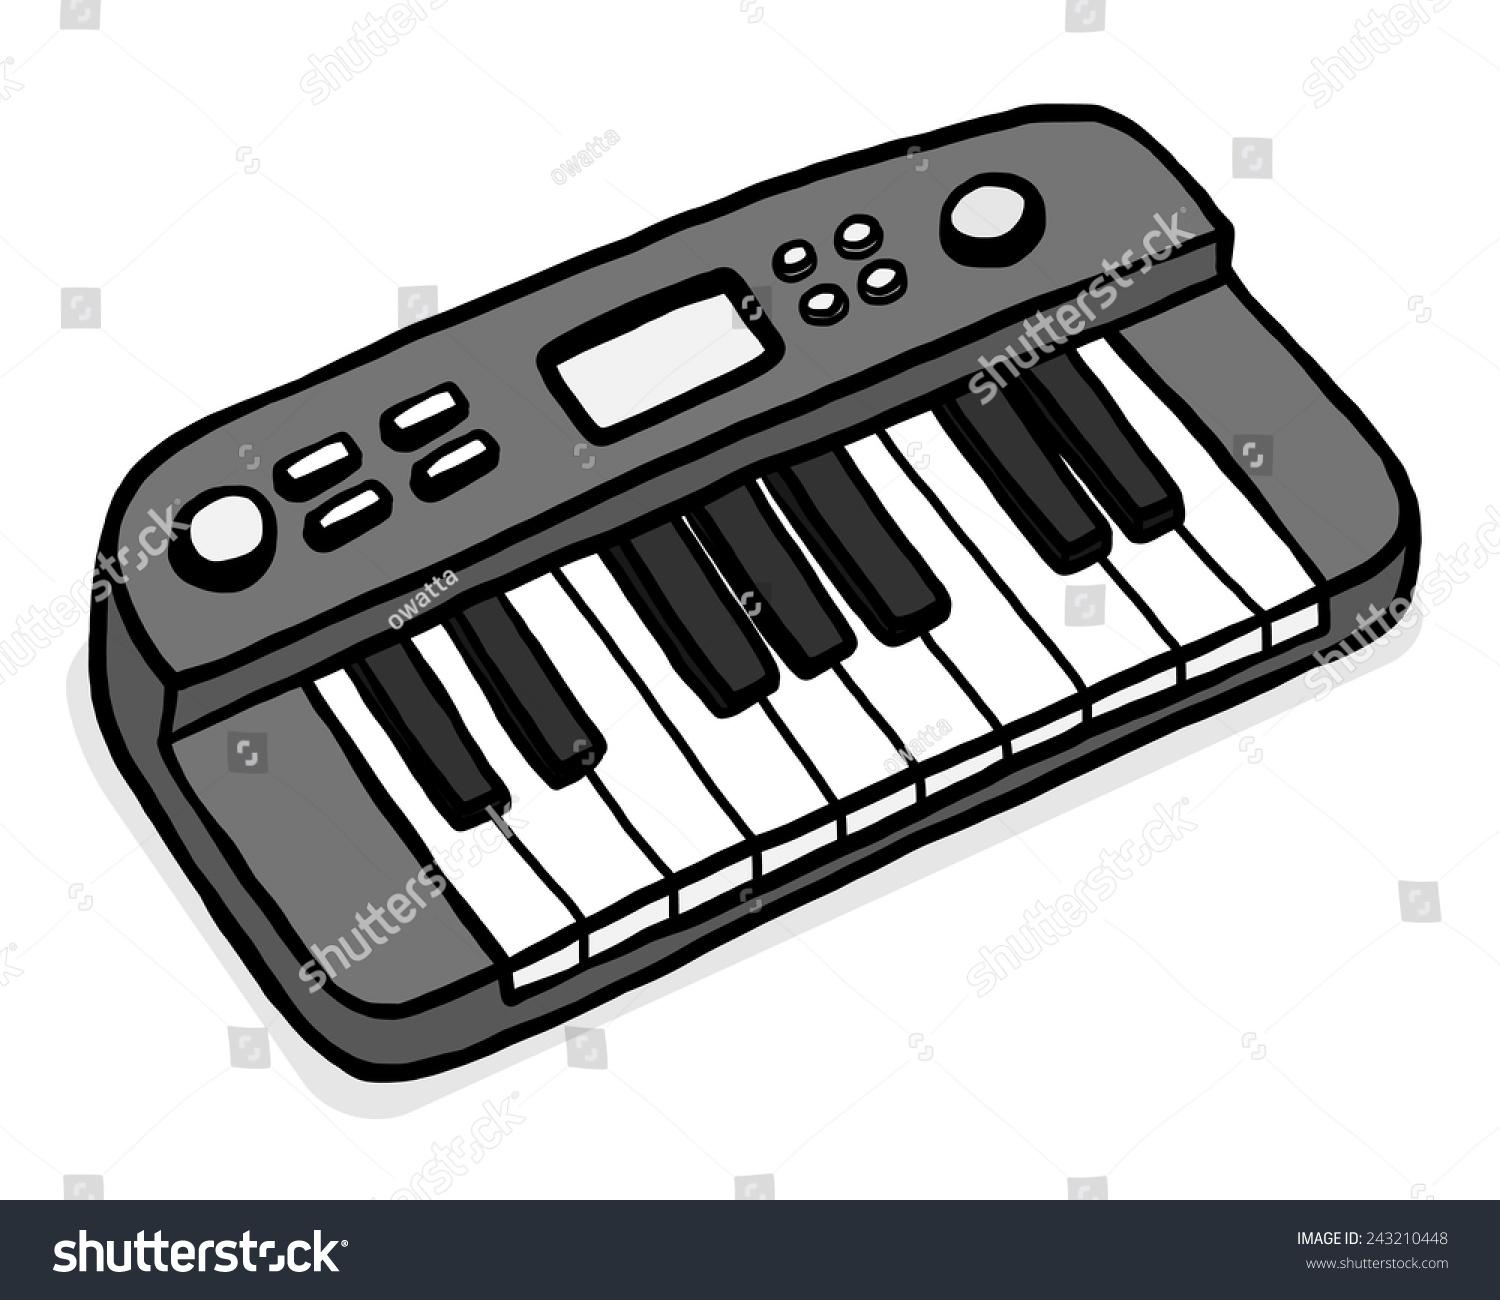 Electronic Musical Keyboard Cartoon Vector Illustration Stock Vector Royalty Free 243210448